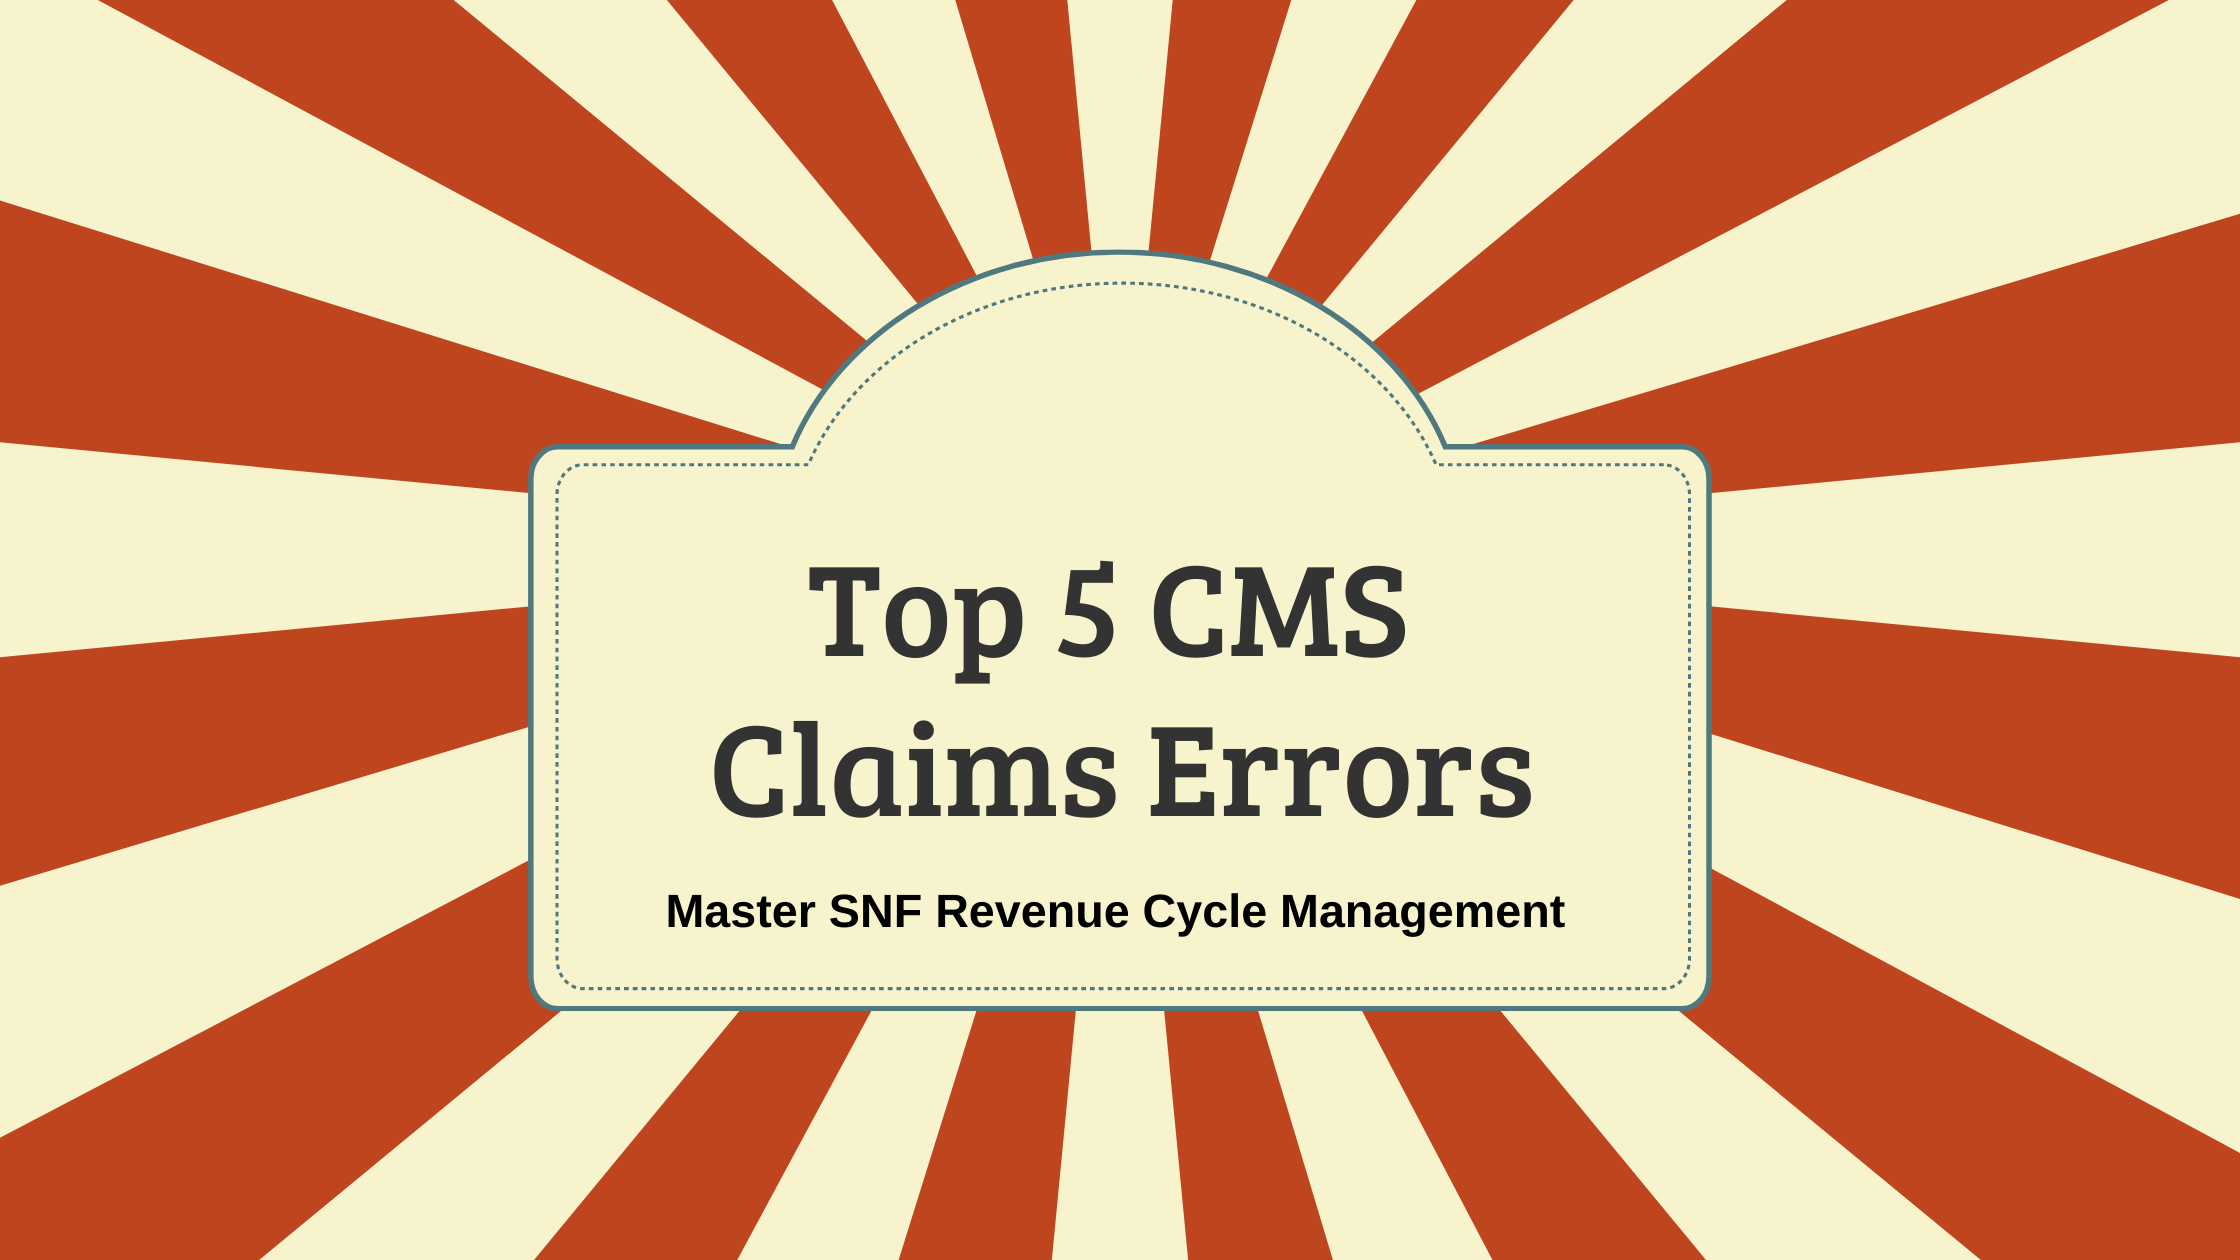 Documentation Critical to CMS Claims, Patient Care and Medical Reviews